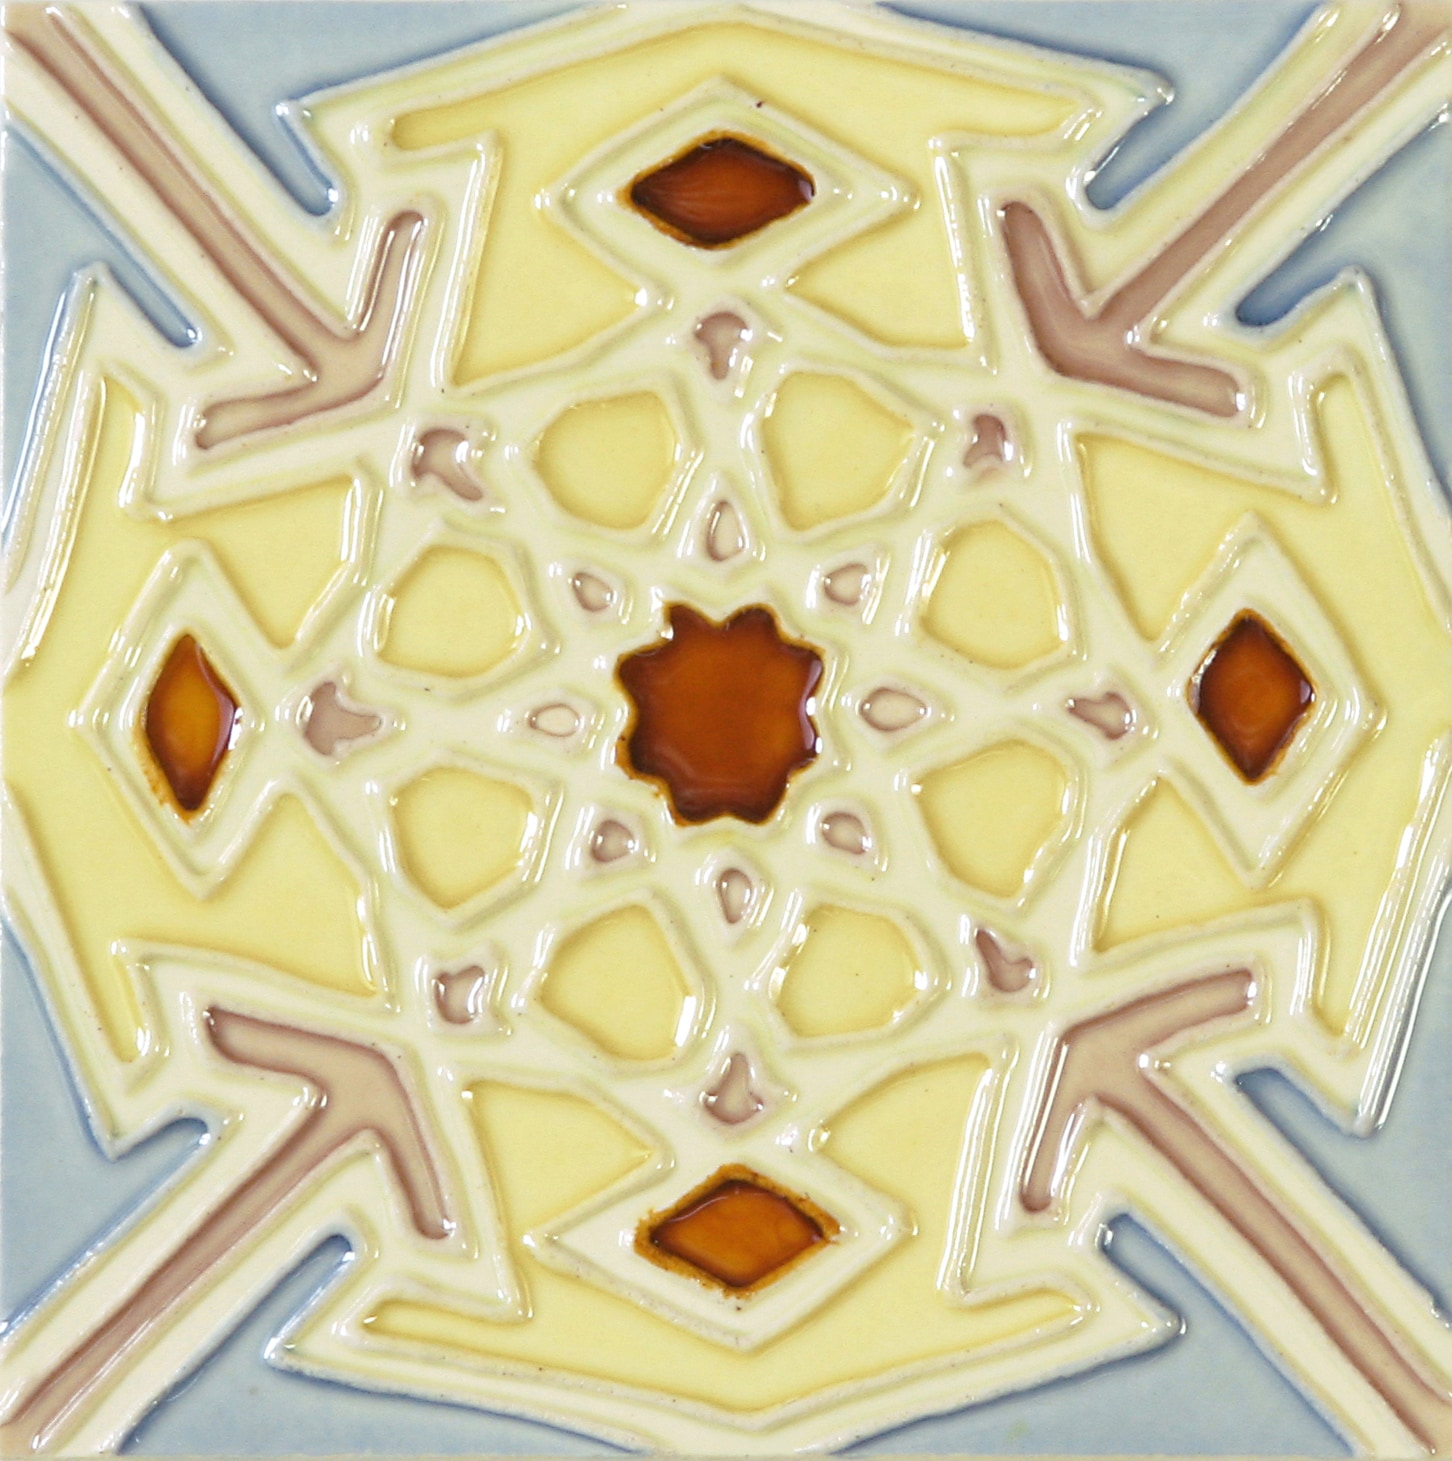 Hand-Painted Ceramic Glazed Wall Tile in Carnaval Hand-Painted Ceramic Glazed Wall Tile in Carnaval 0